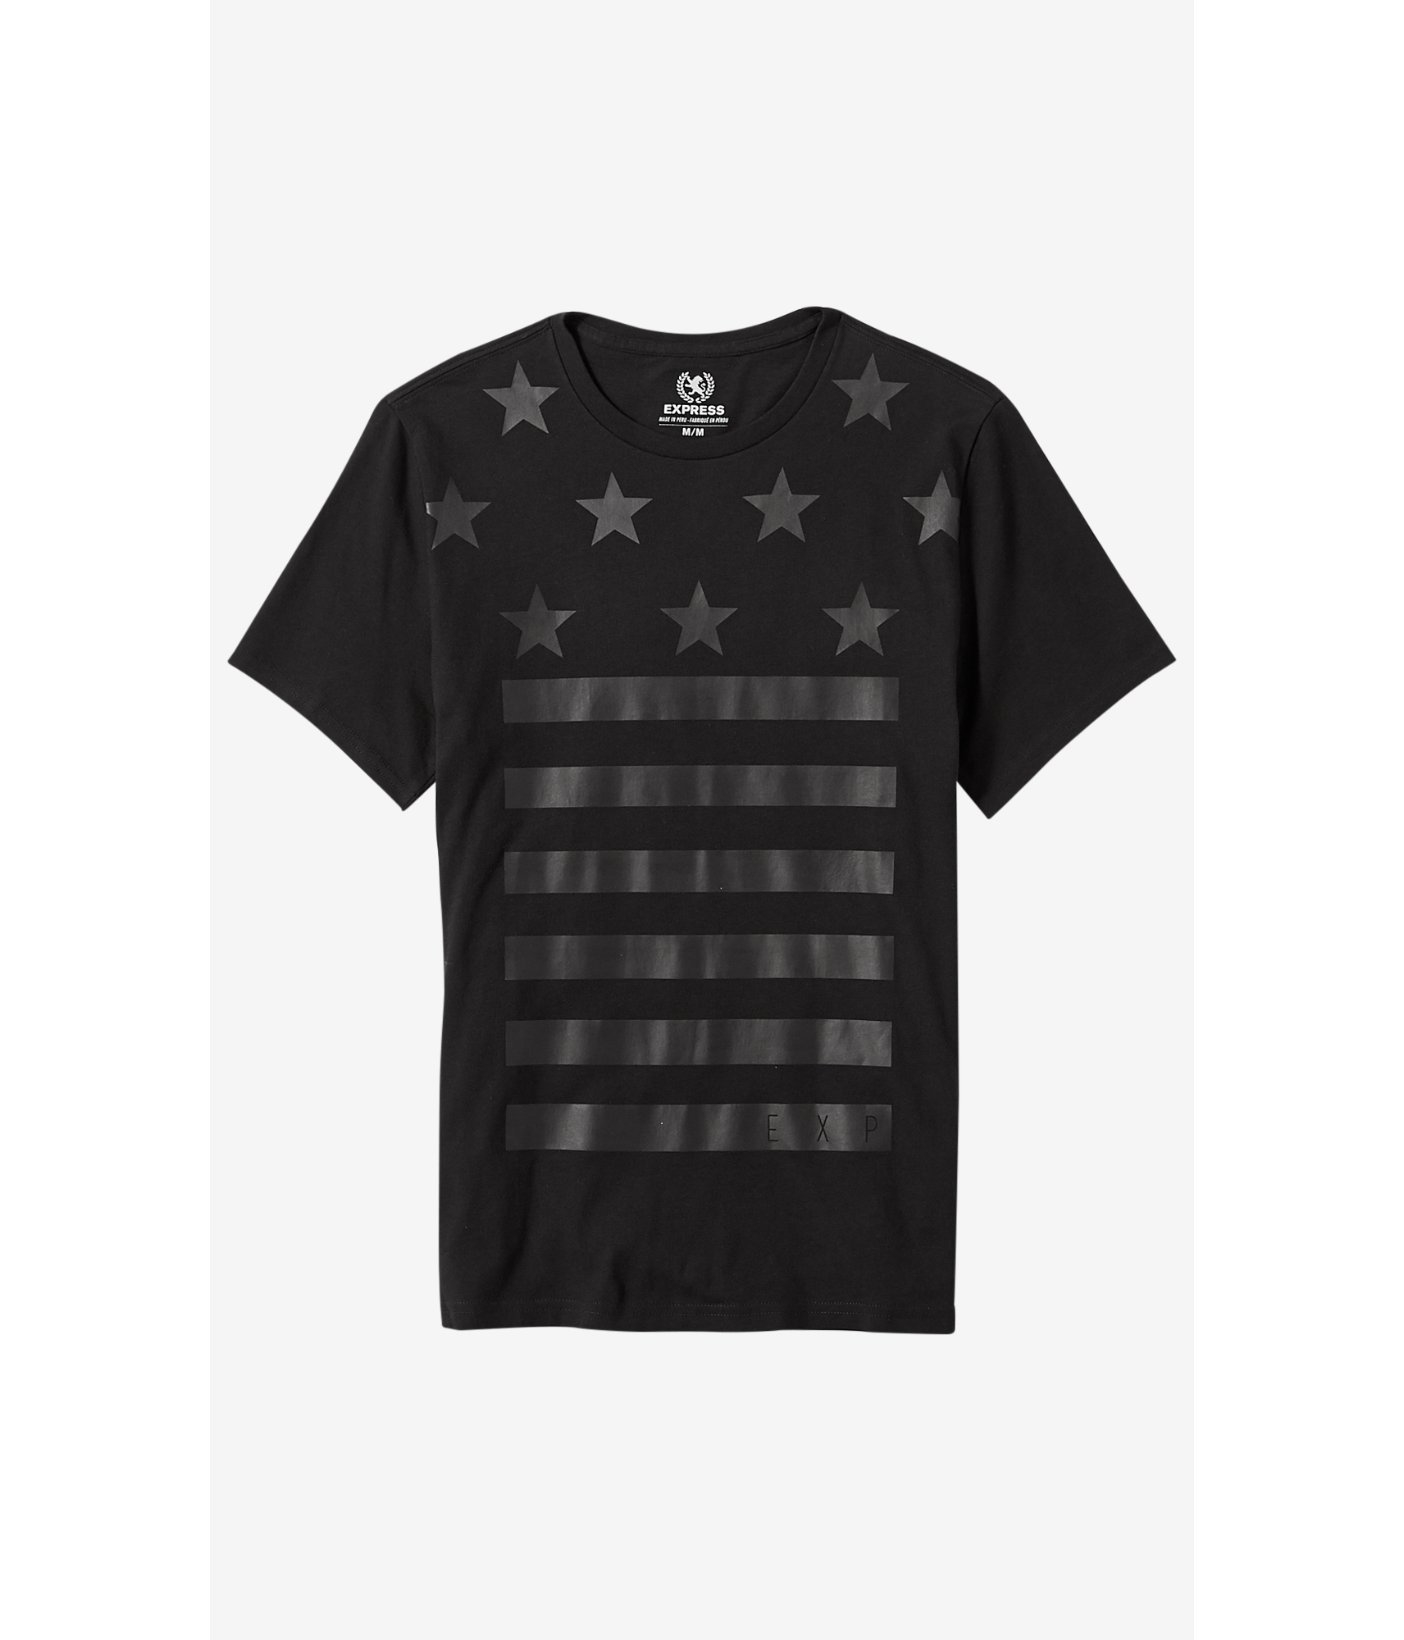 express-pitch-black-black-stars-and-stripes-graphic-t-shirt-product-0-122066922-normal